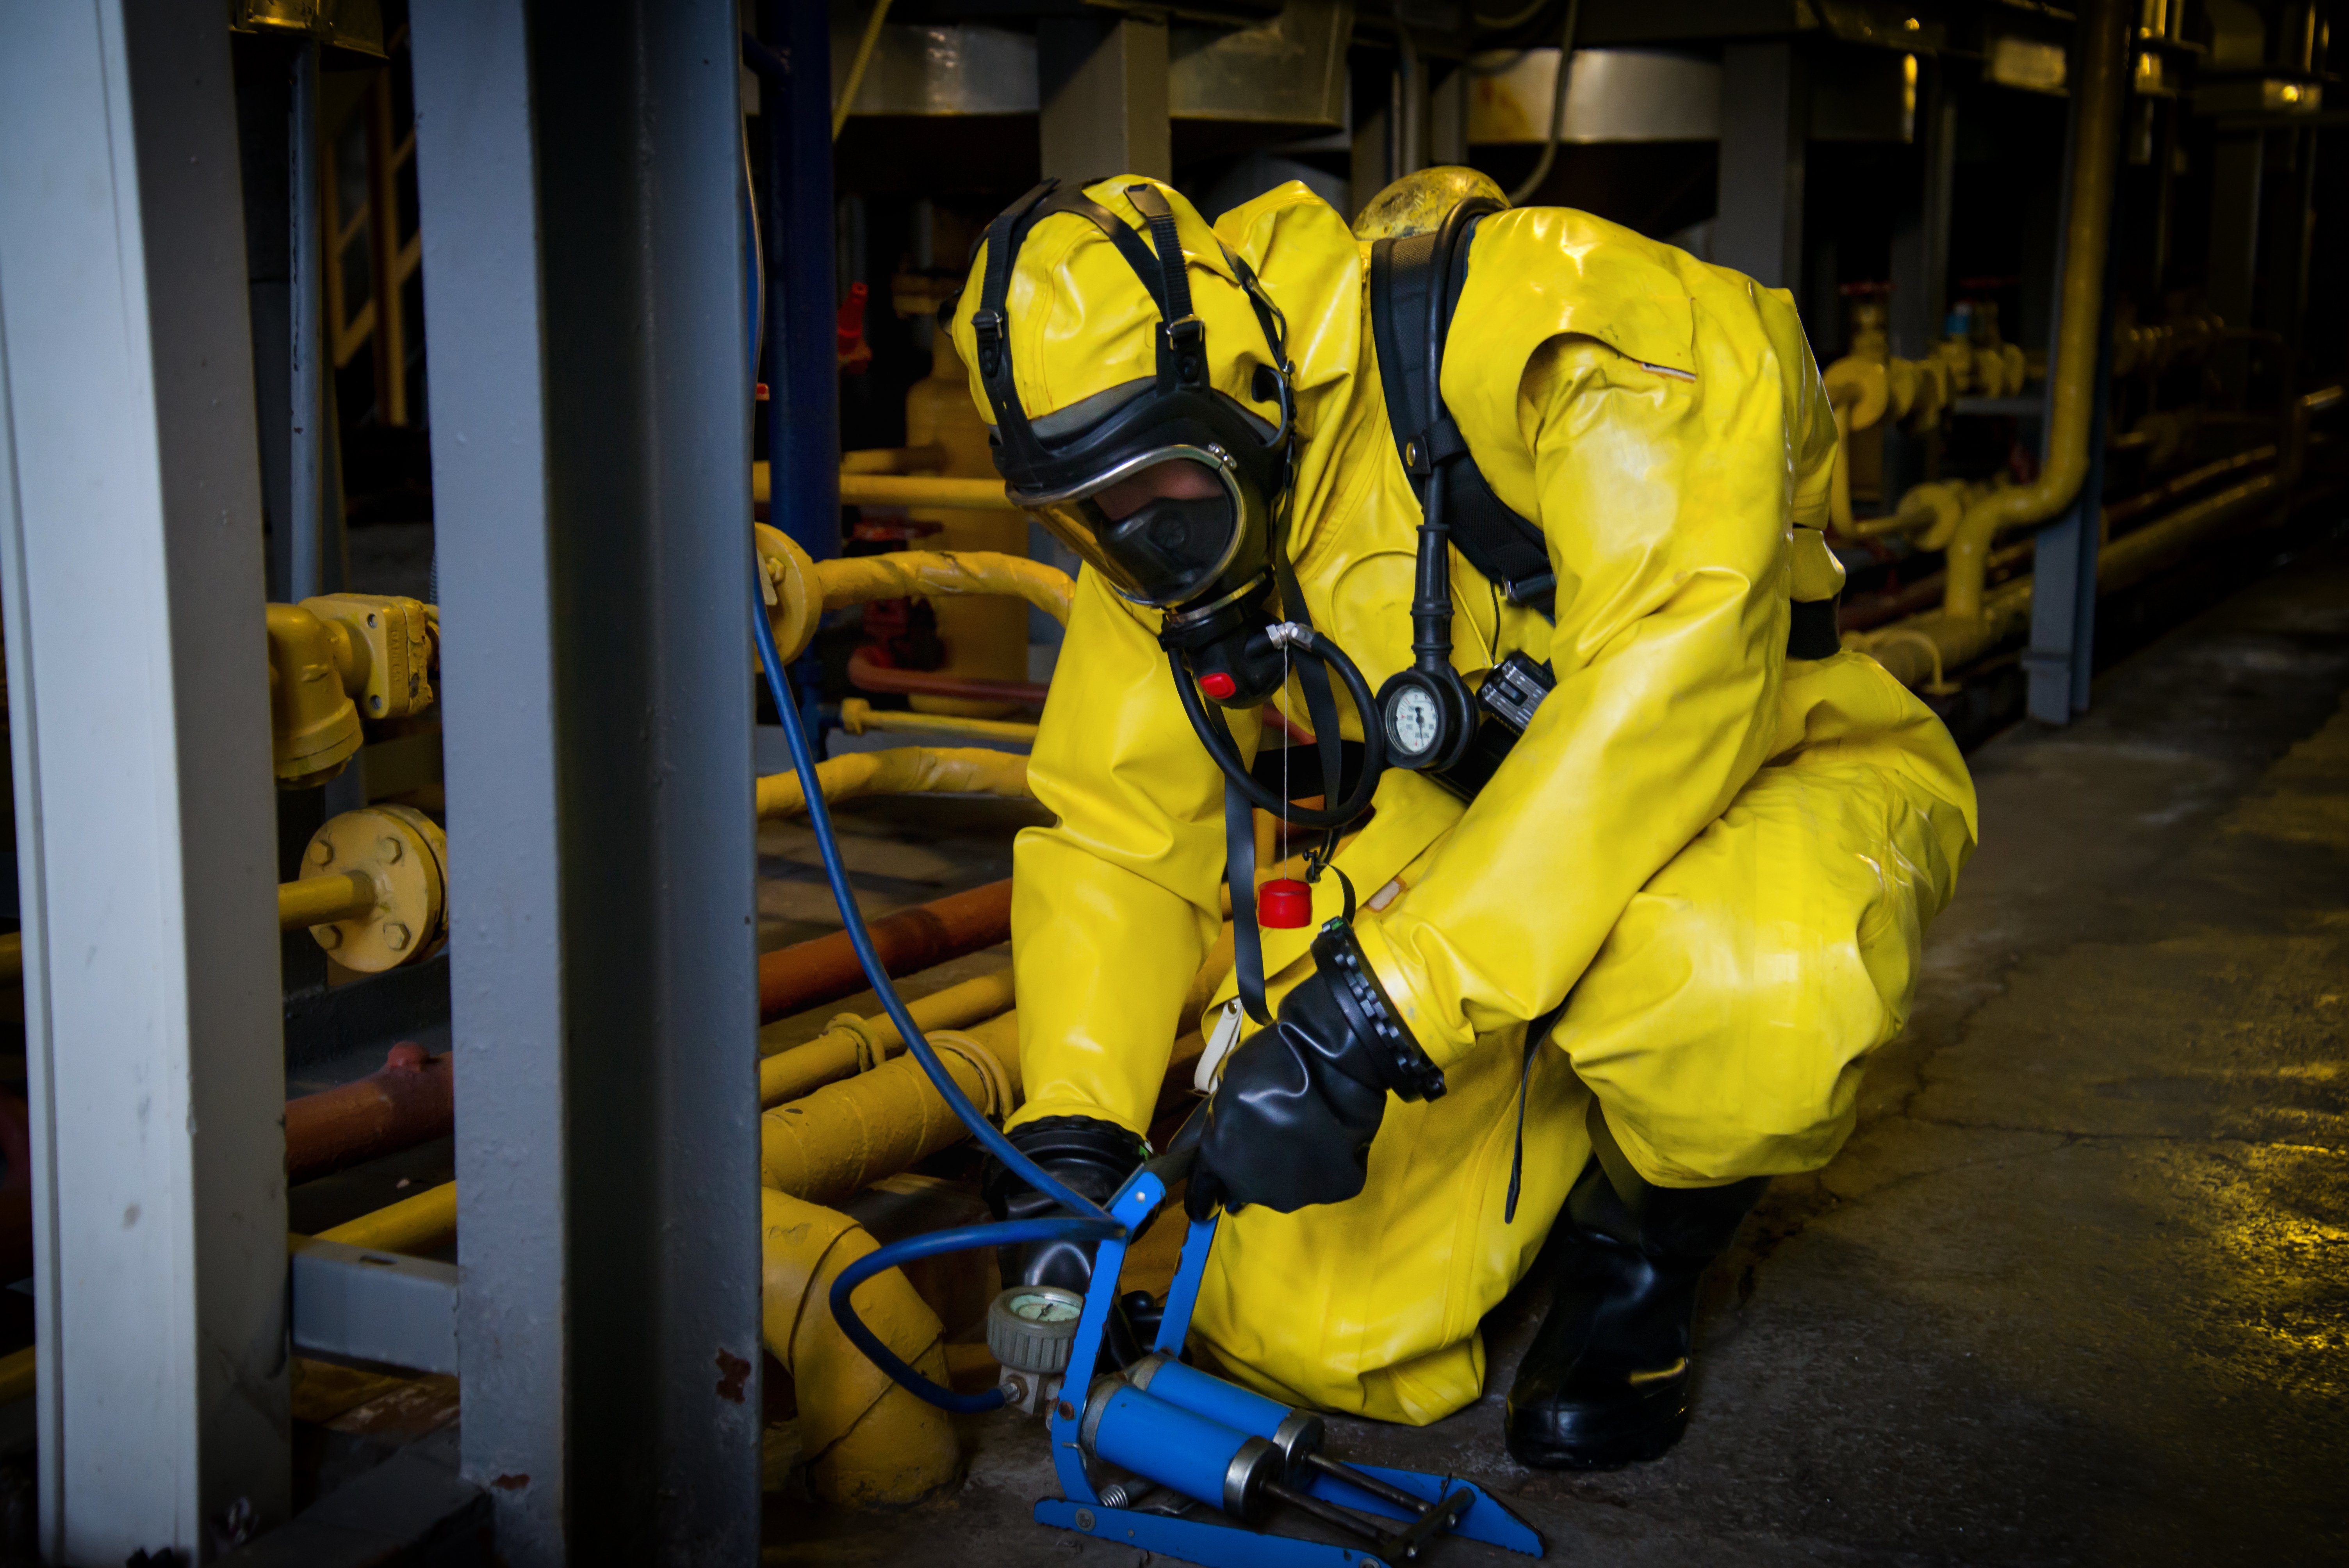 How can a wide-area instrumented system boost radiation hazard training?